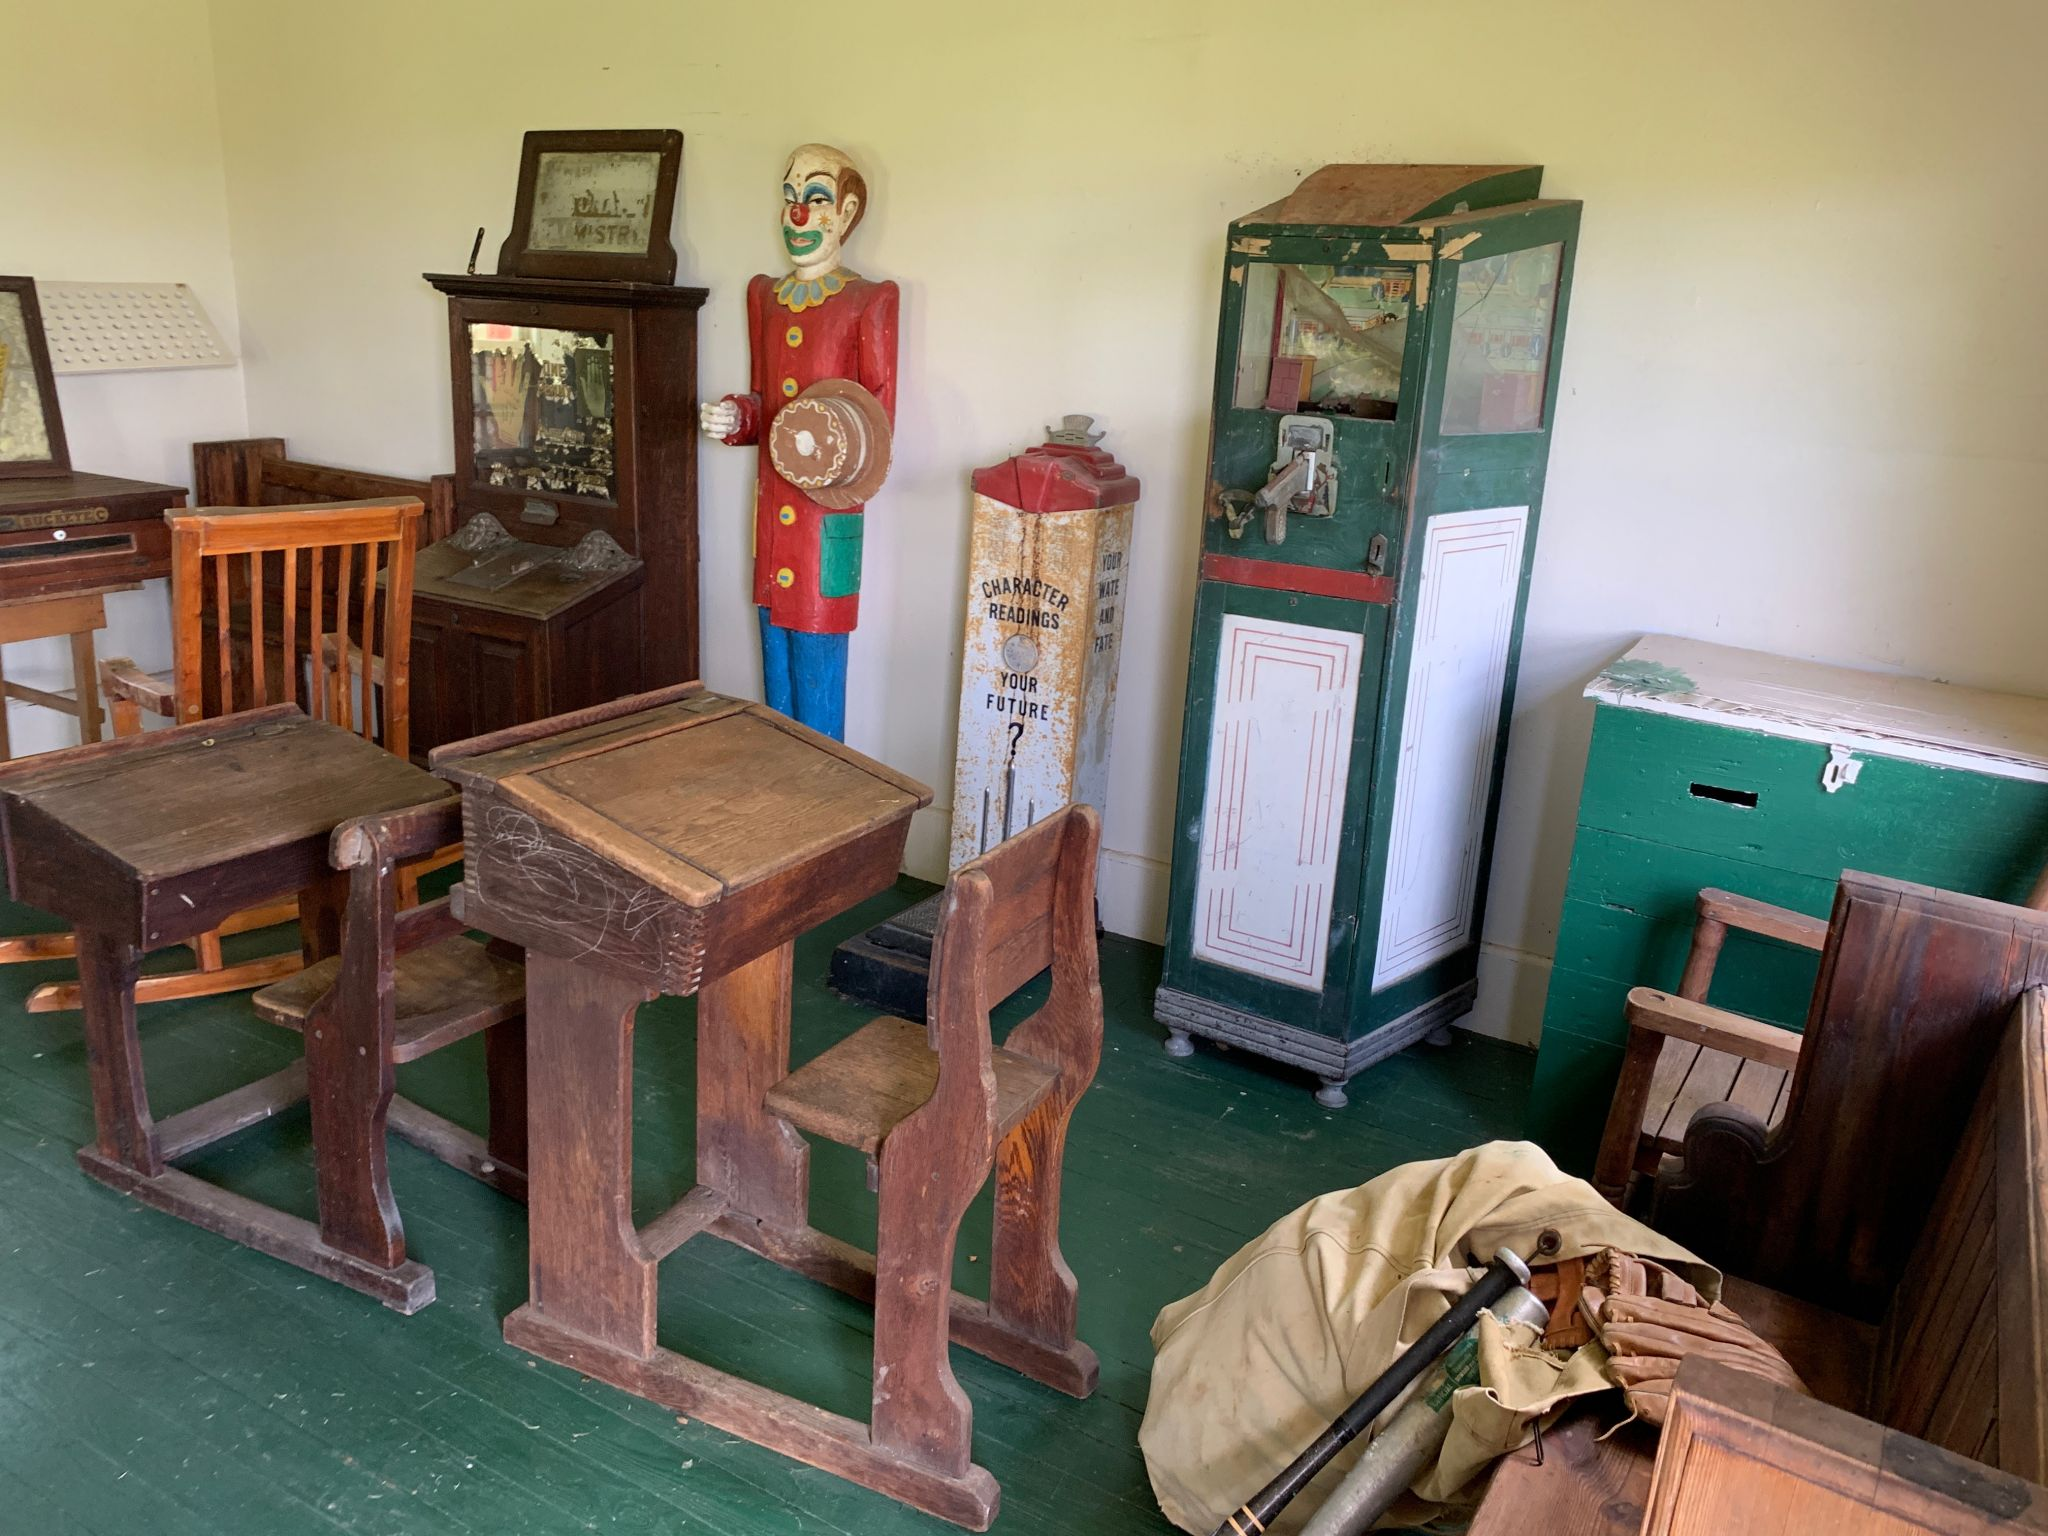 Auction features goods from Denton Cooley's family ranch, Cool Acres